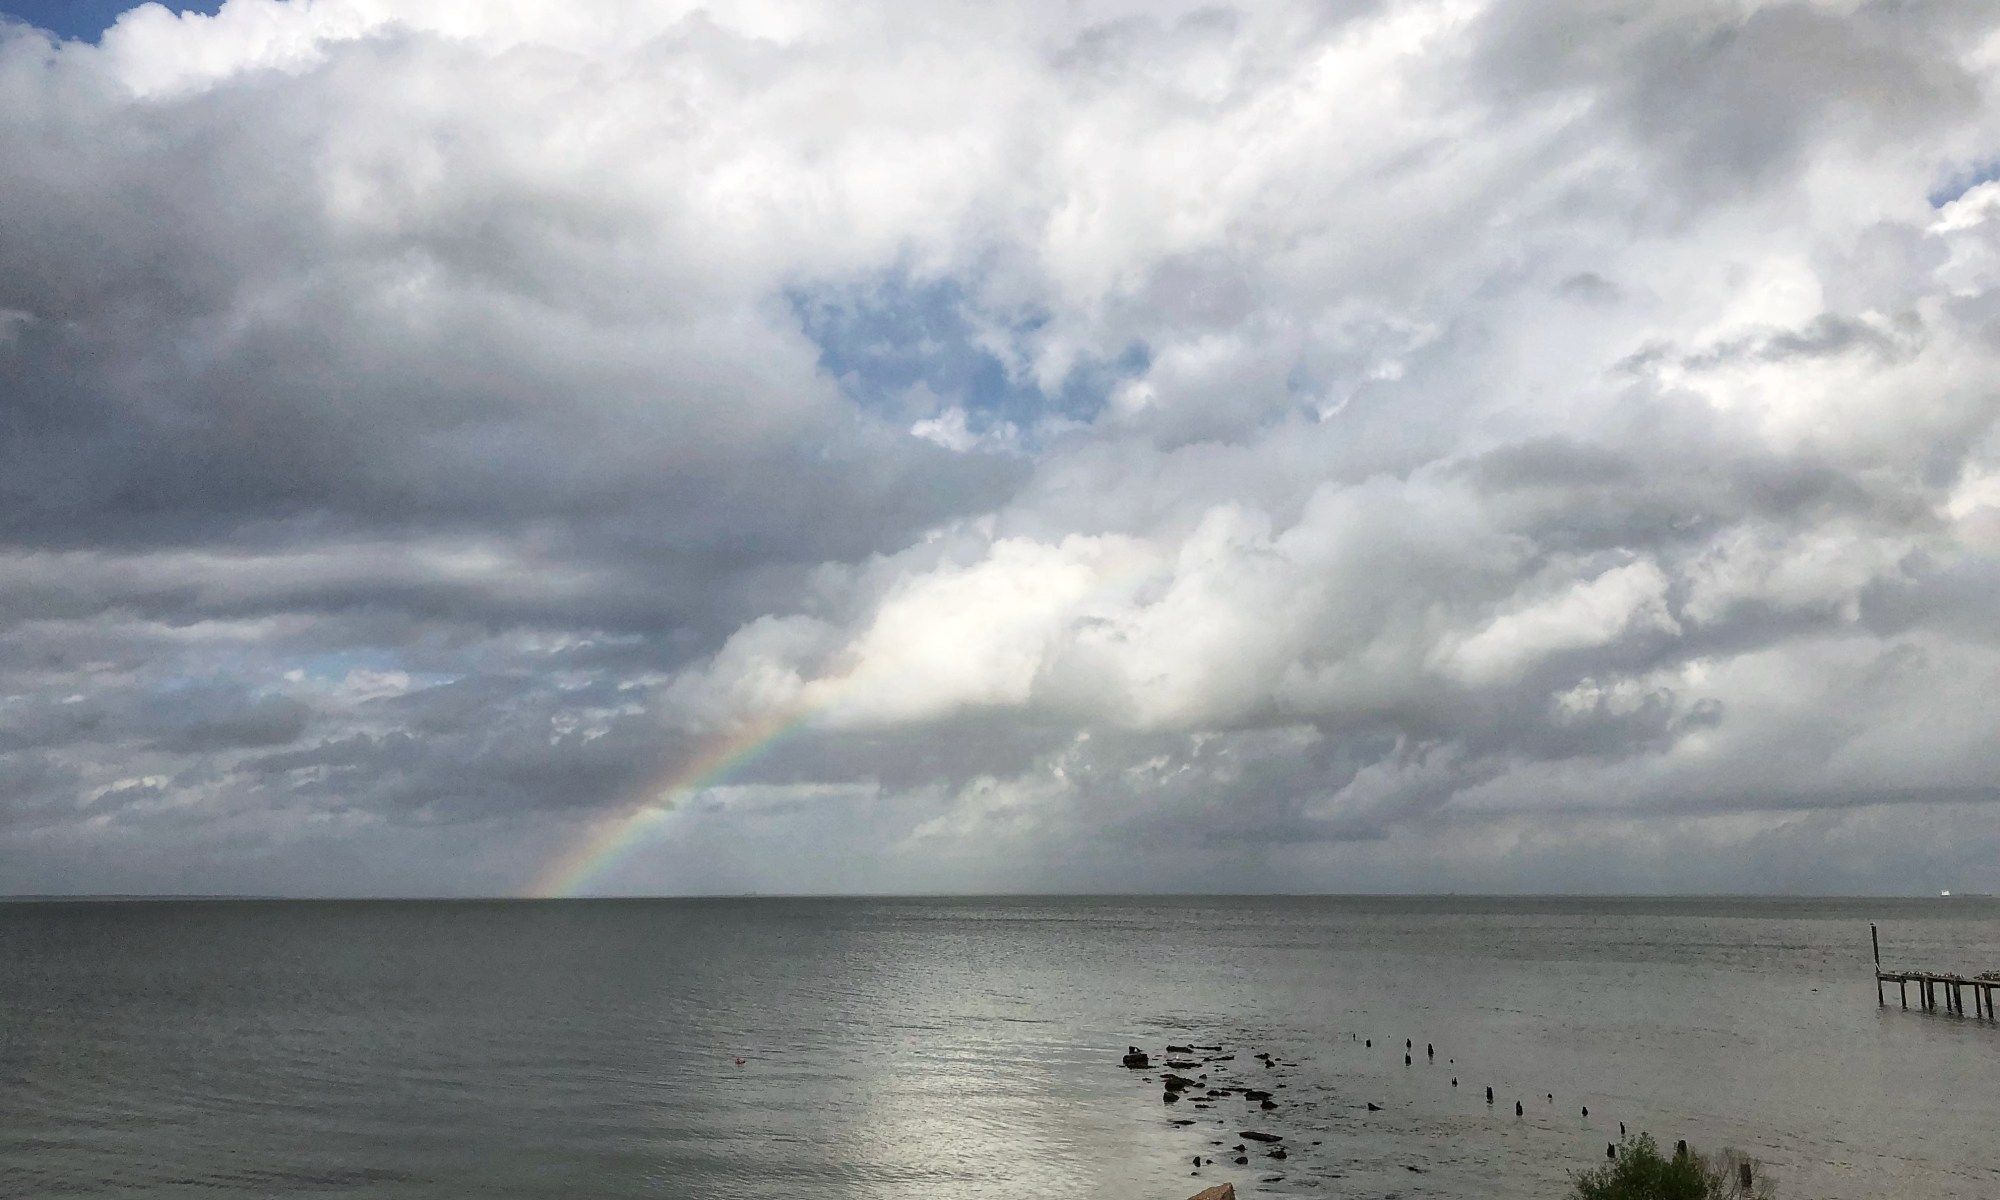 Rainbow over Galveston Bay, Bacliff TX Photo by The Quilt Rambler